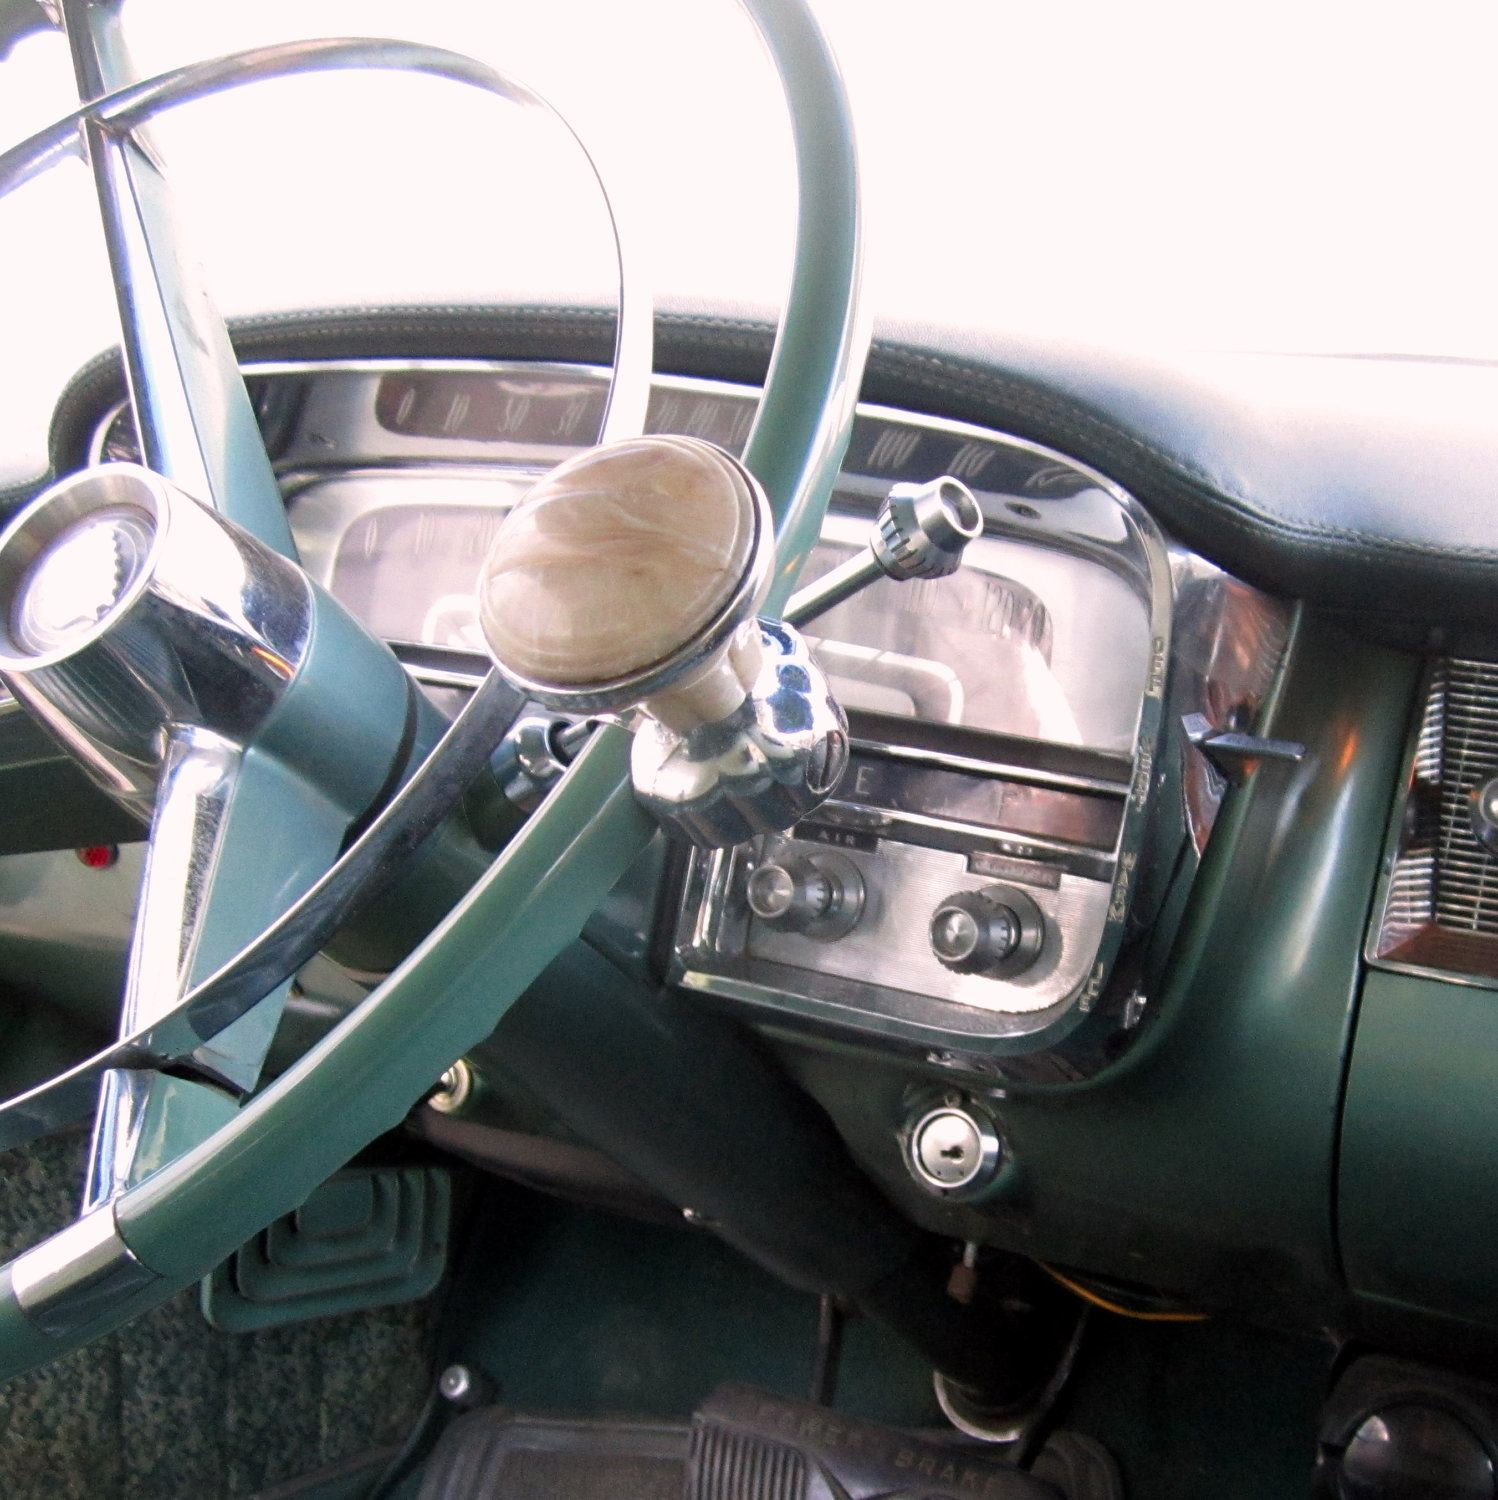 Knob On Steering Wheel My Dad Used One Of These When He Broke